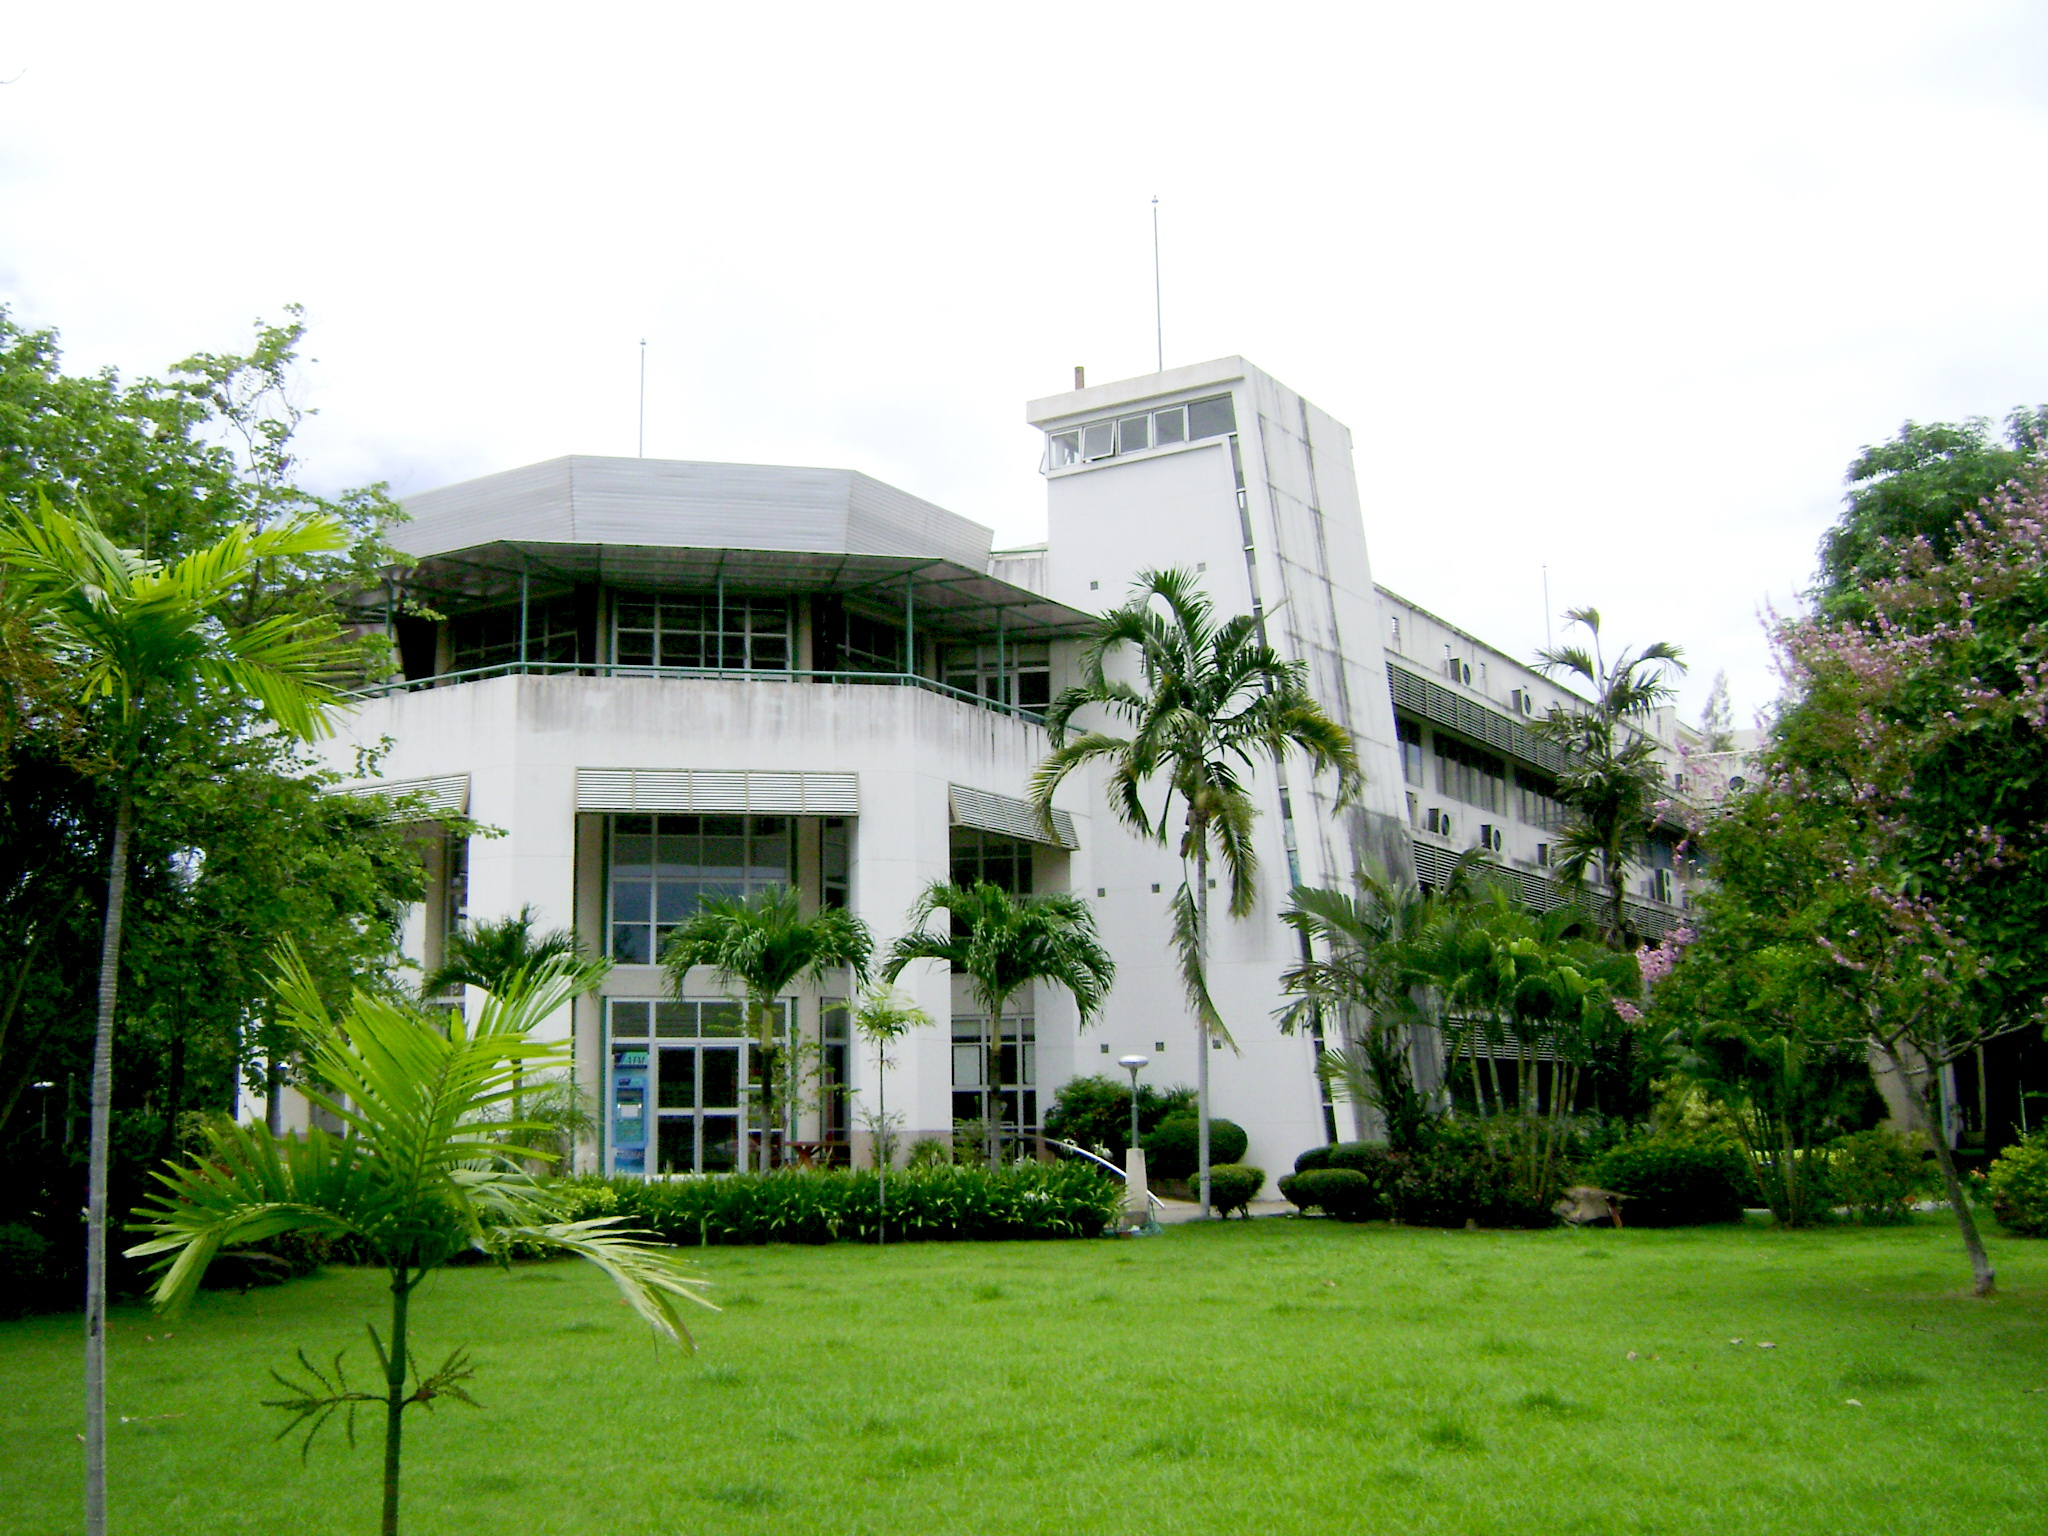 thesis online silpakorn university Sexual harassment and verbal abuse during the freshmen welcoming ceremony of the faculty of painting, sculpture and graphic arts at silpakorn university have been reported by incoming students.